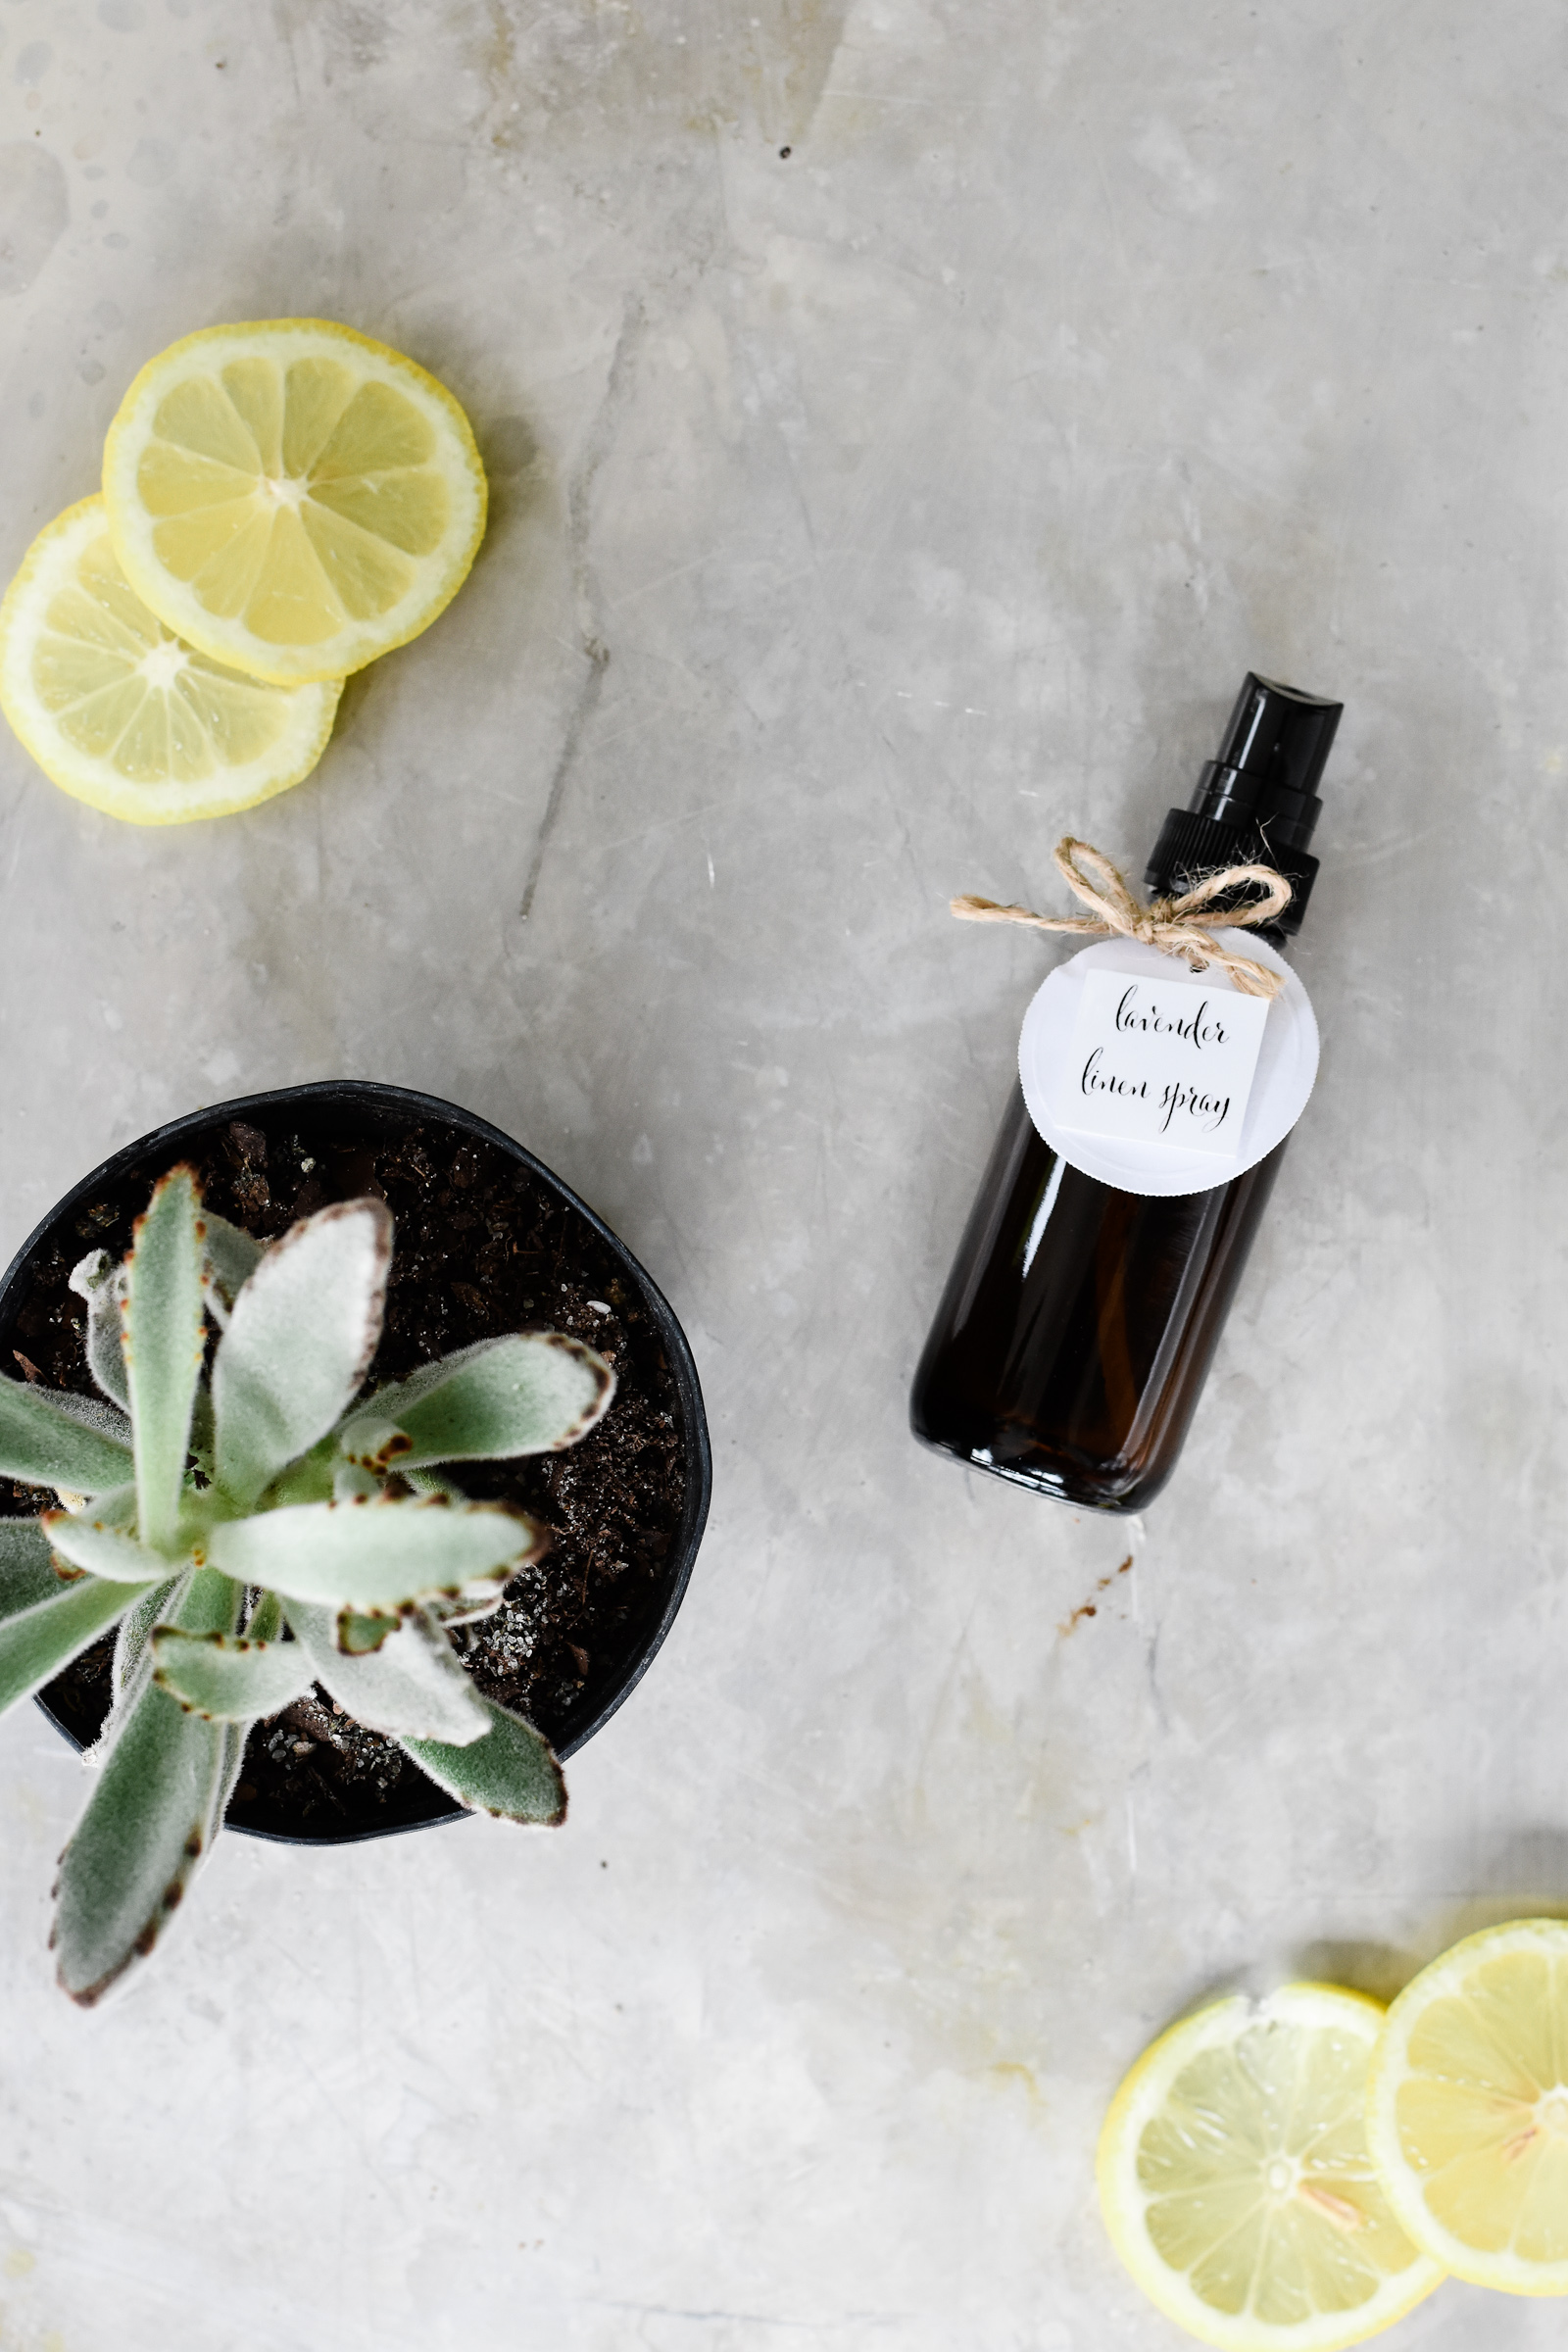 5 Ways to Create a Relaxing Environment + DIY Essential Oil Lavender Linen Spray